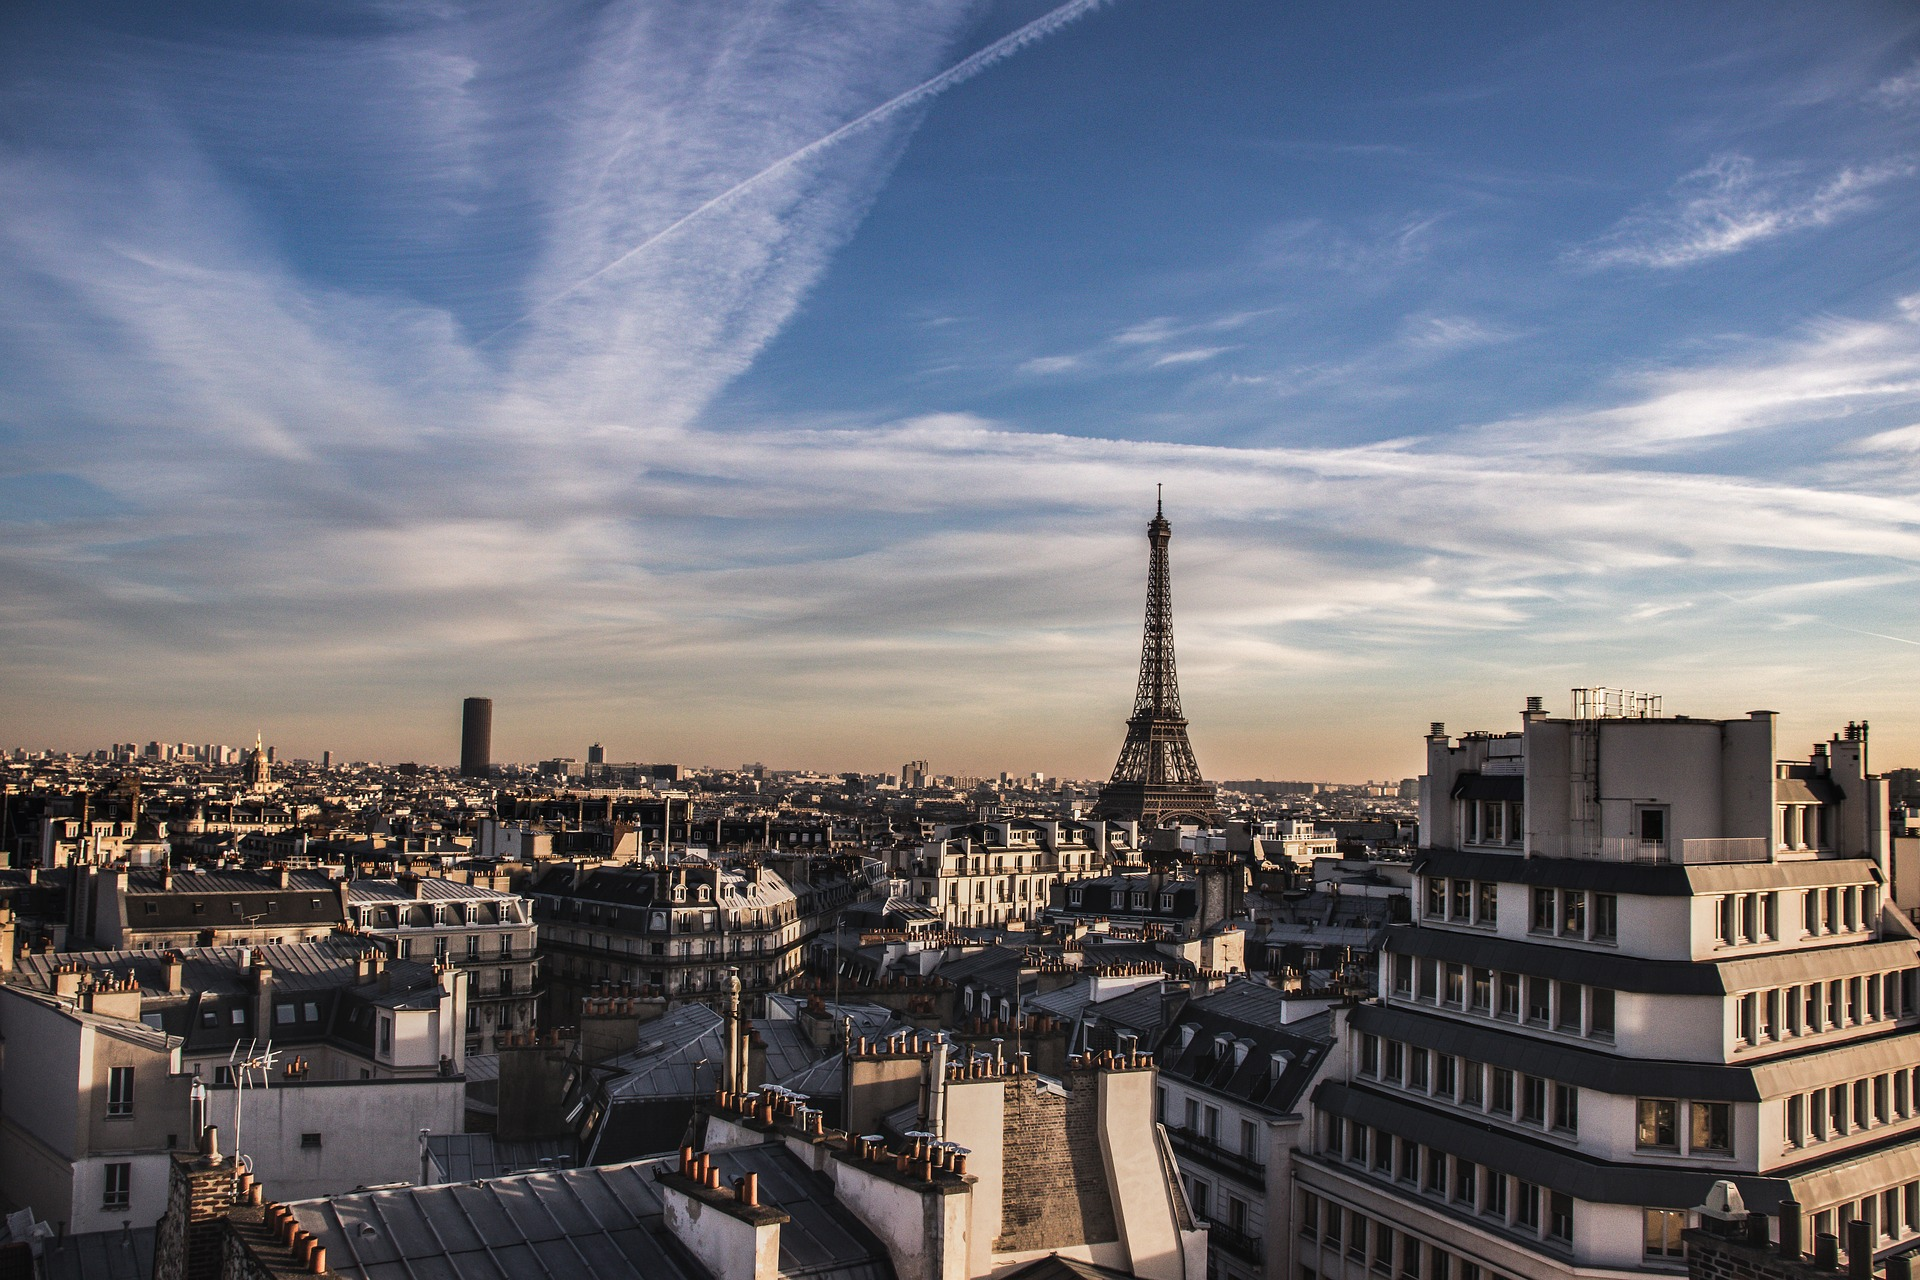 View Of Eiffel Tower from City